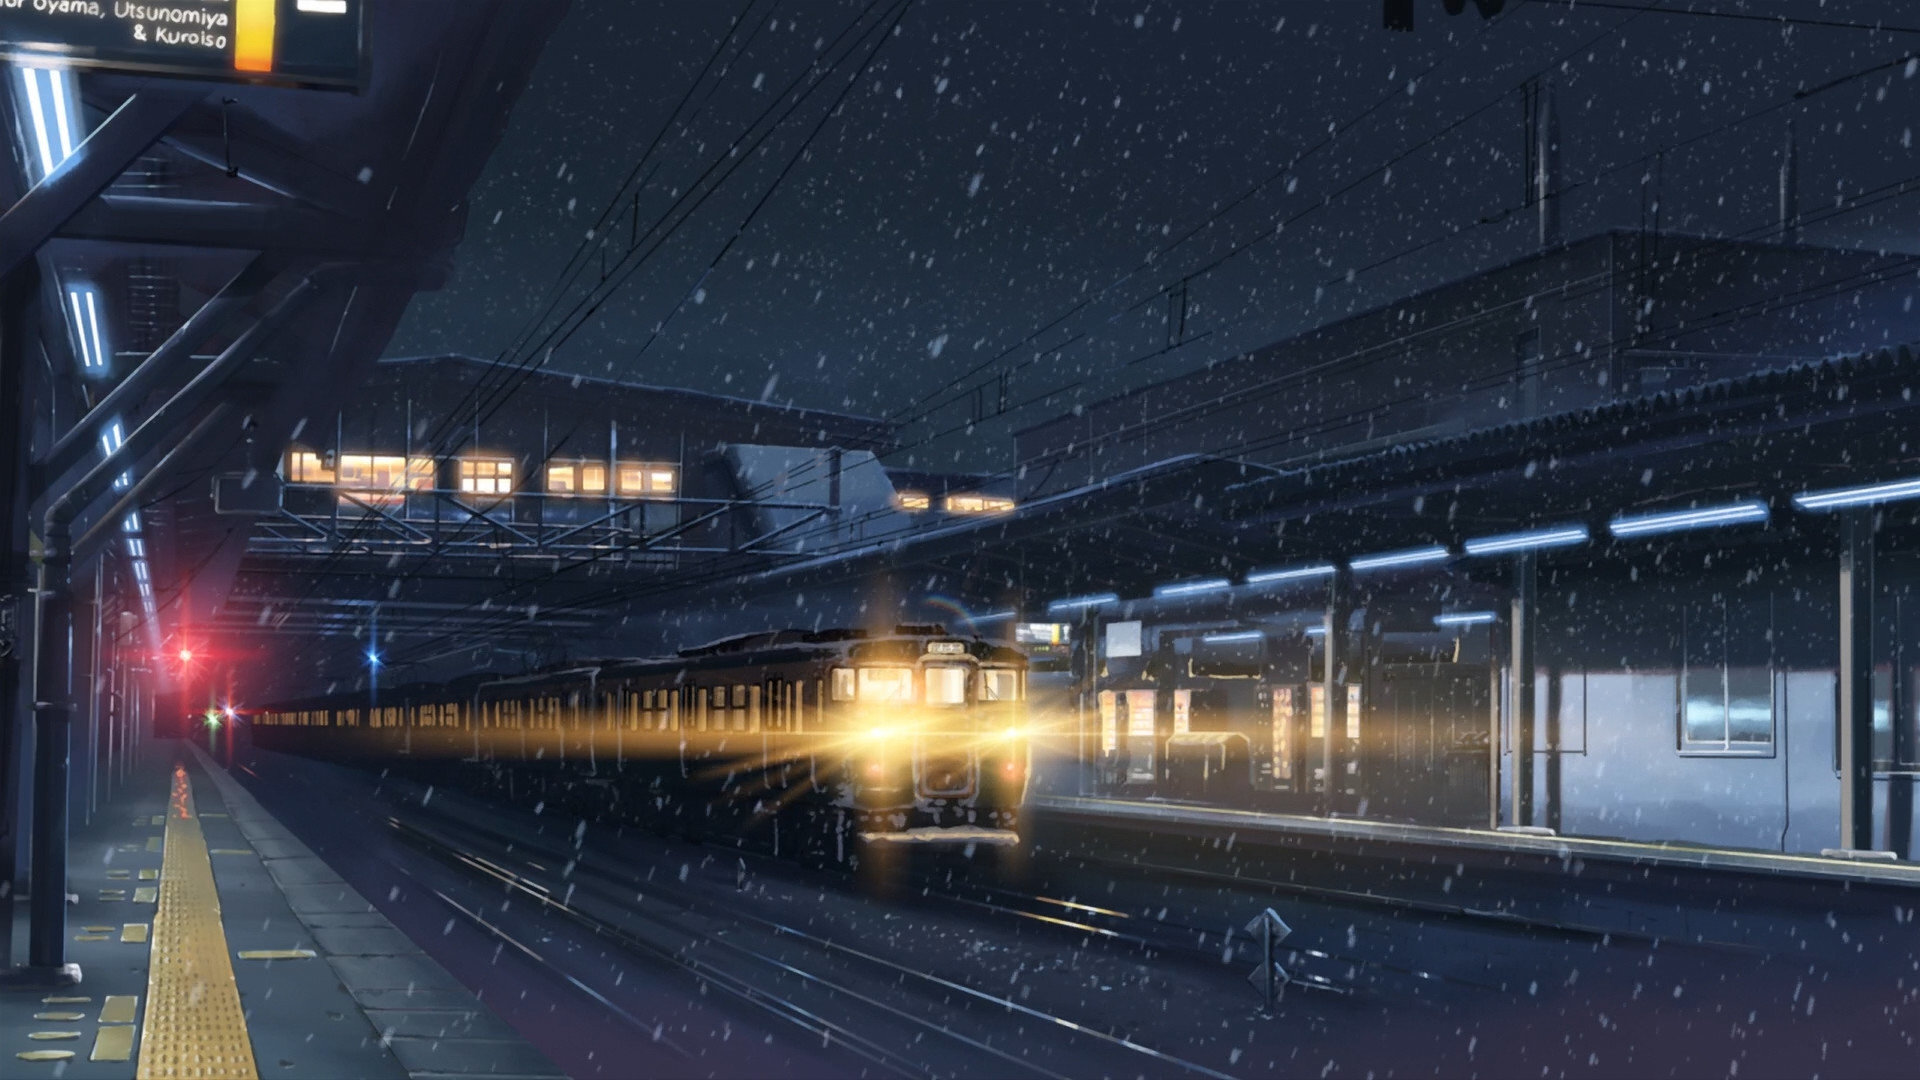 Best 5 (cm) Centimeters Per Second wallpaper ID:90068 for High Resolution hd 1080p computer